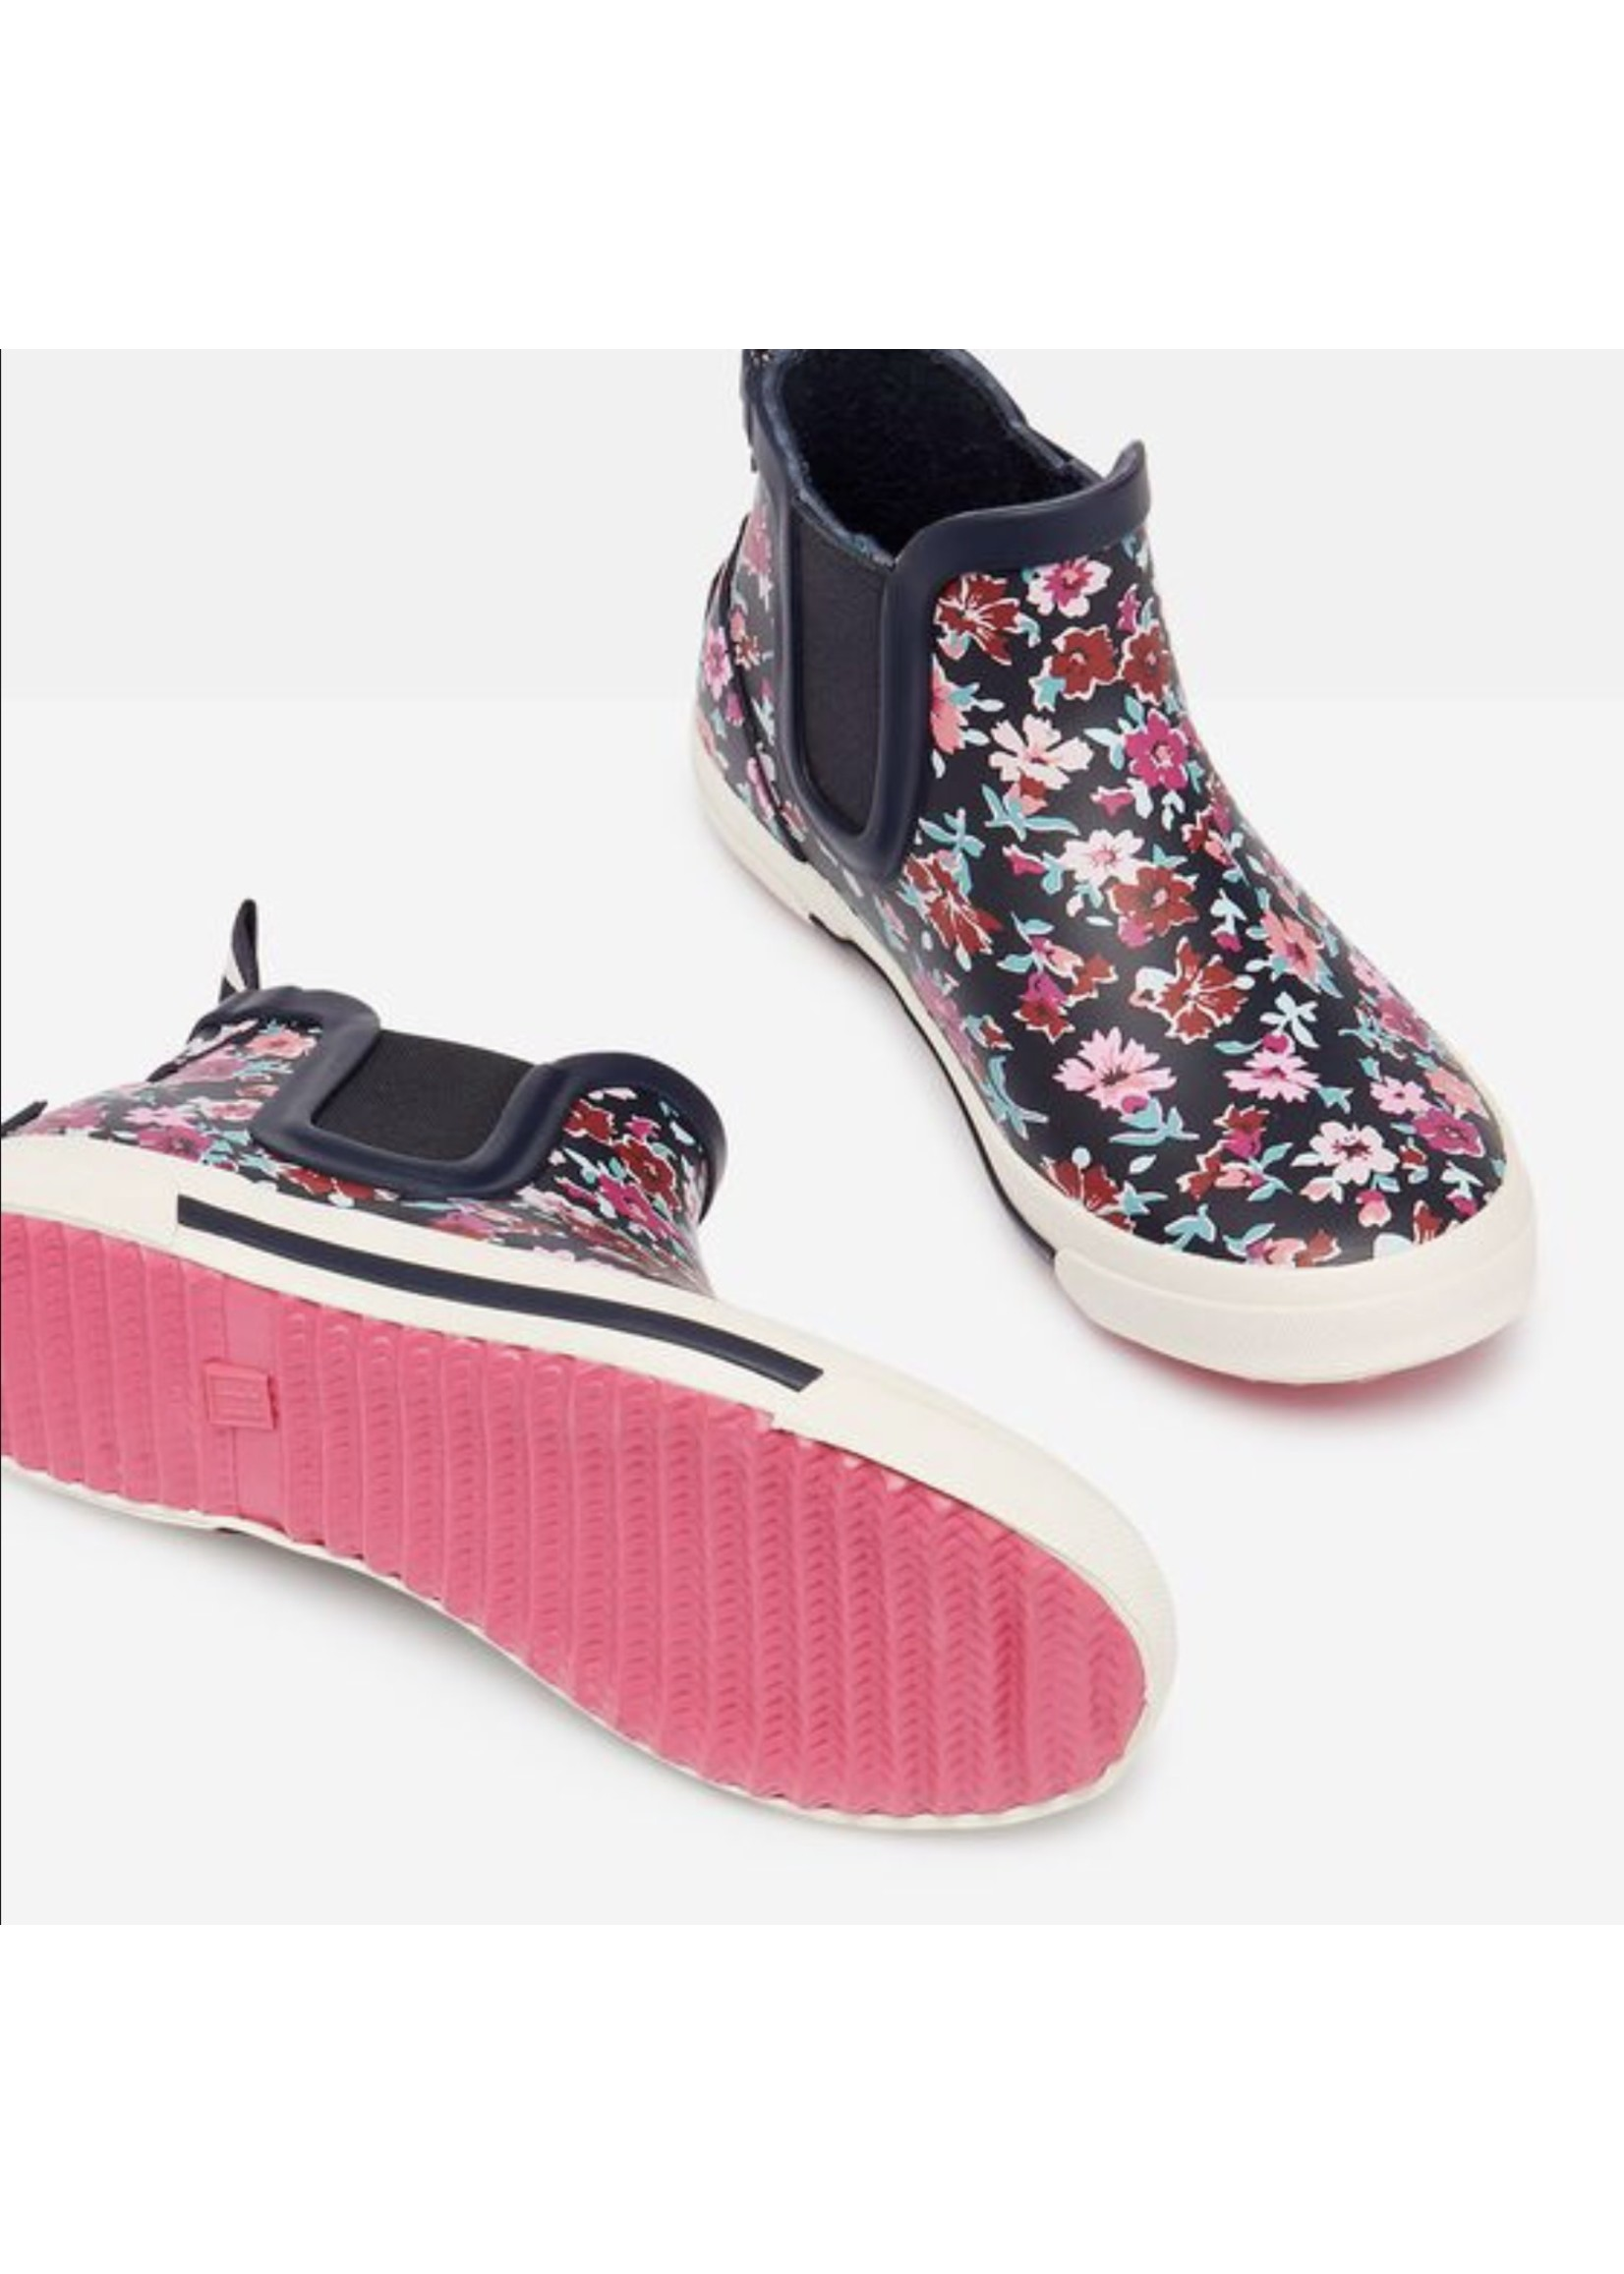 Joules Joules Short Wellie